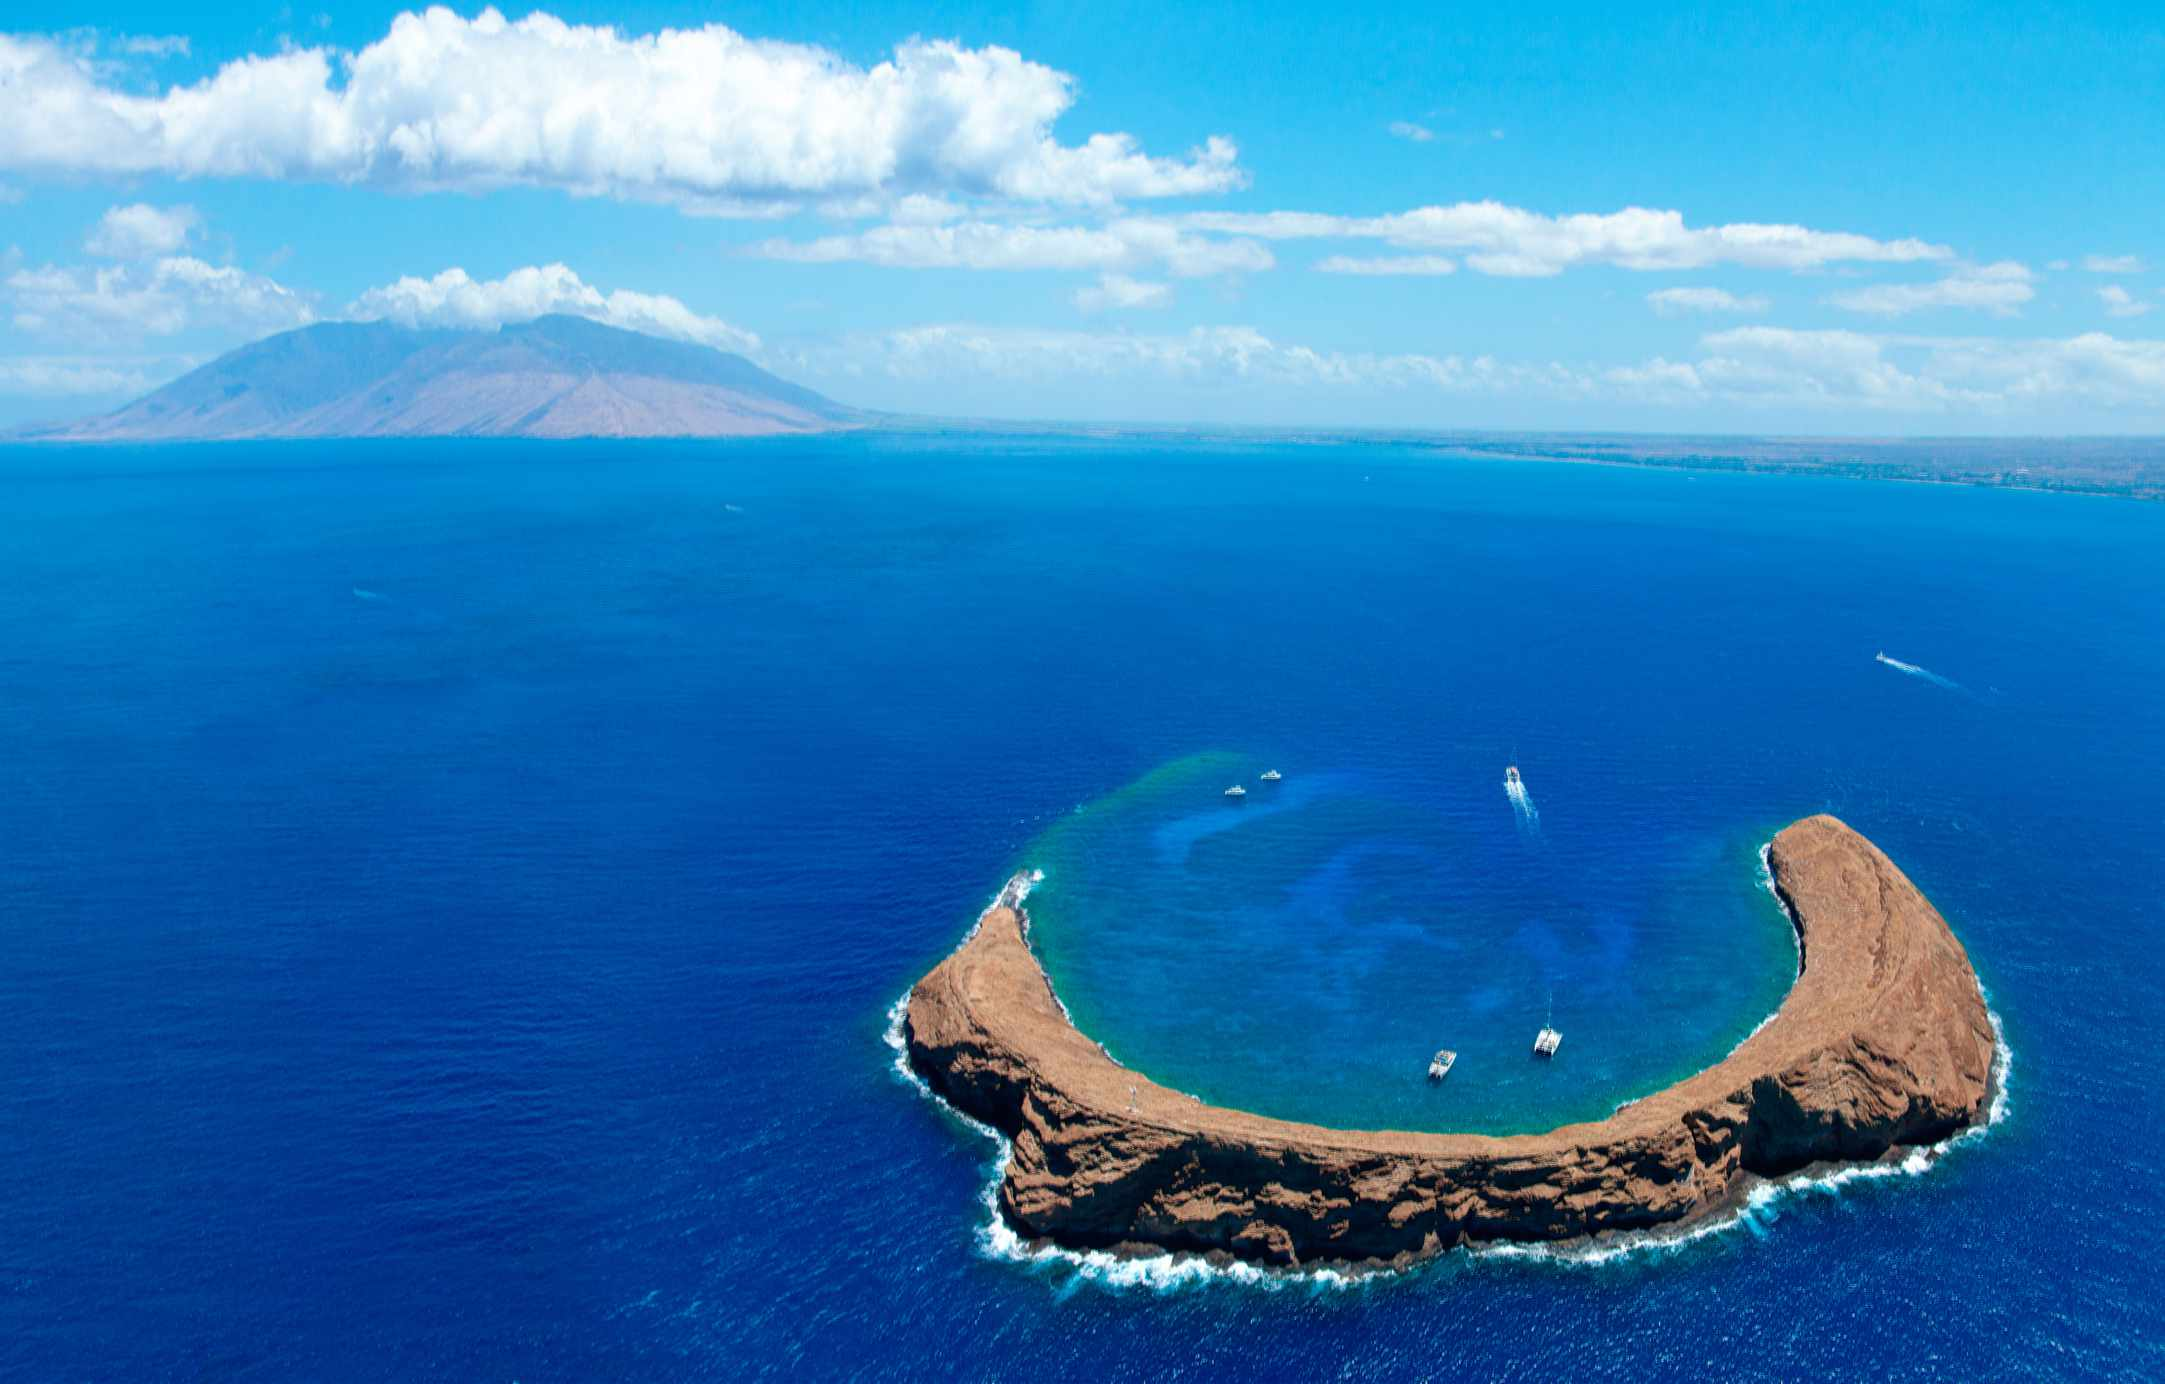 View of Molokini Crater with Maui in the background